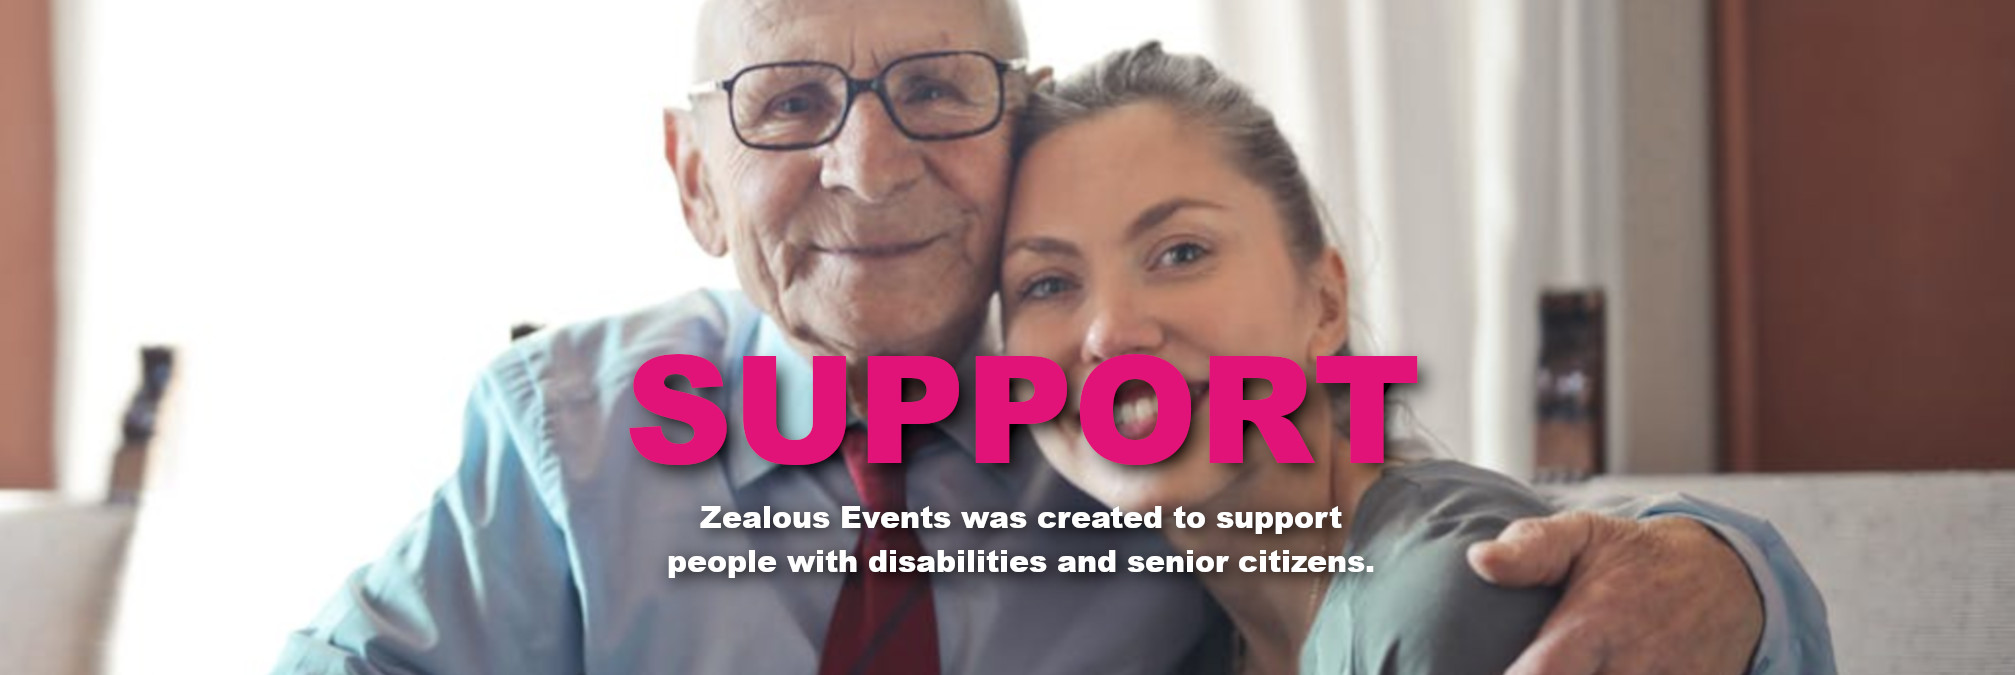 Support - Zealous Events was created to support people with disabilities and senior citizens.